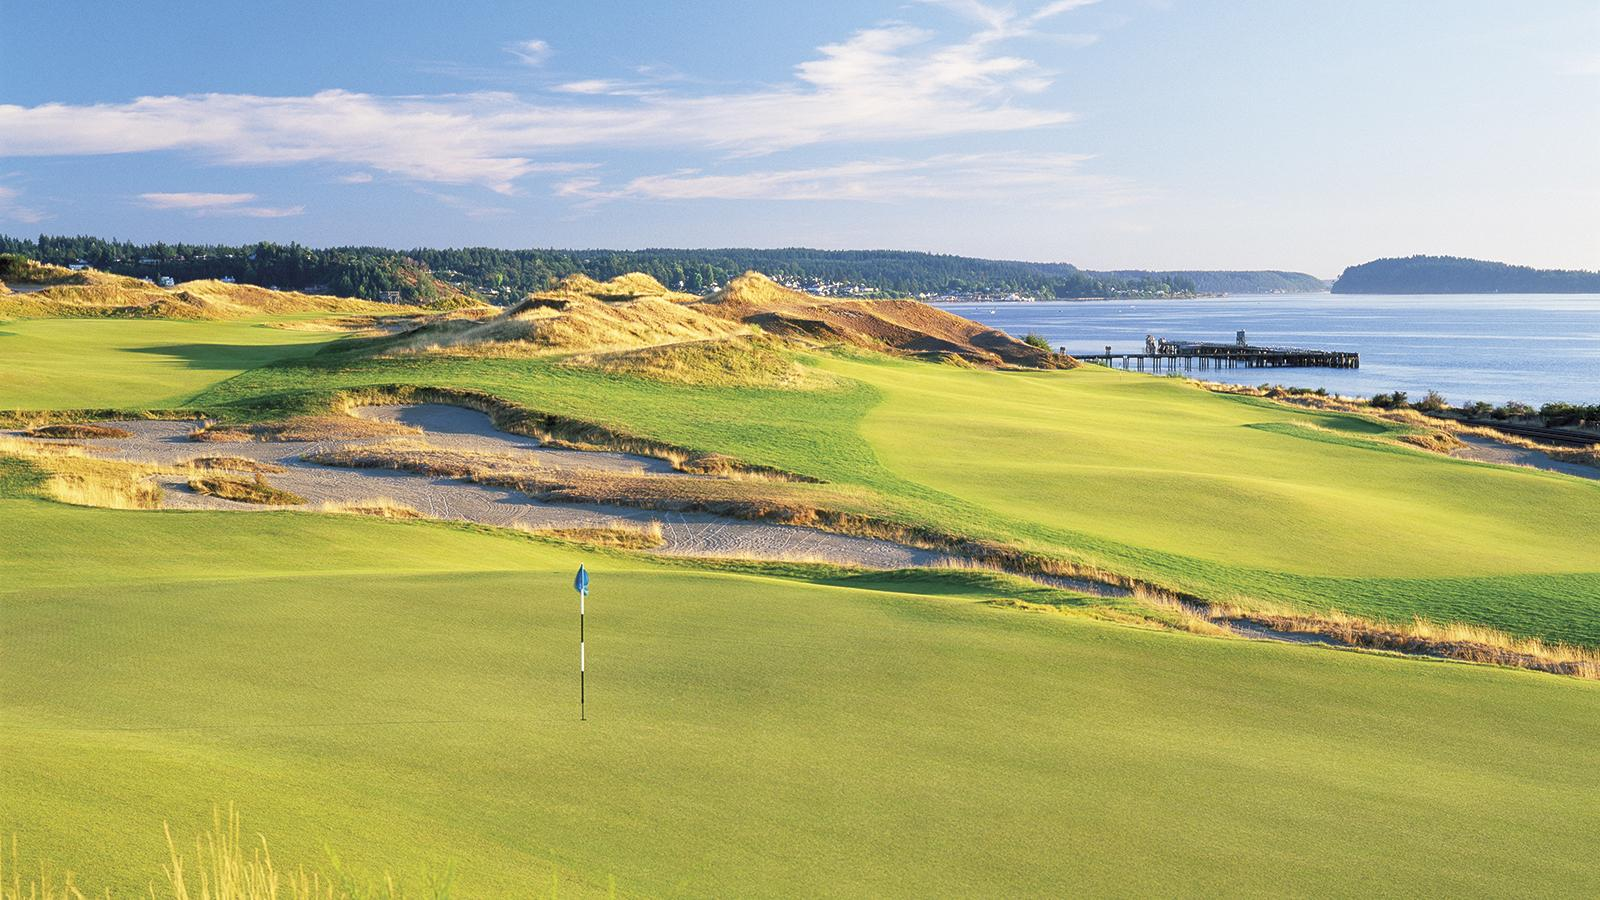 The stark, haunting beauty of Chambers Bay, the challenging and controversial site of the 2015 U.S. Open, which was designed by Robert Trent Jones Jr.